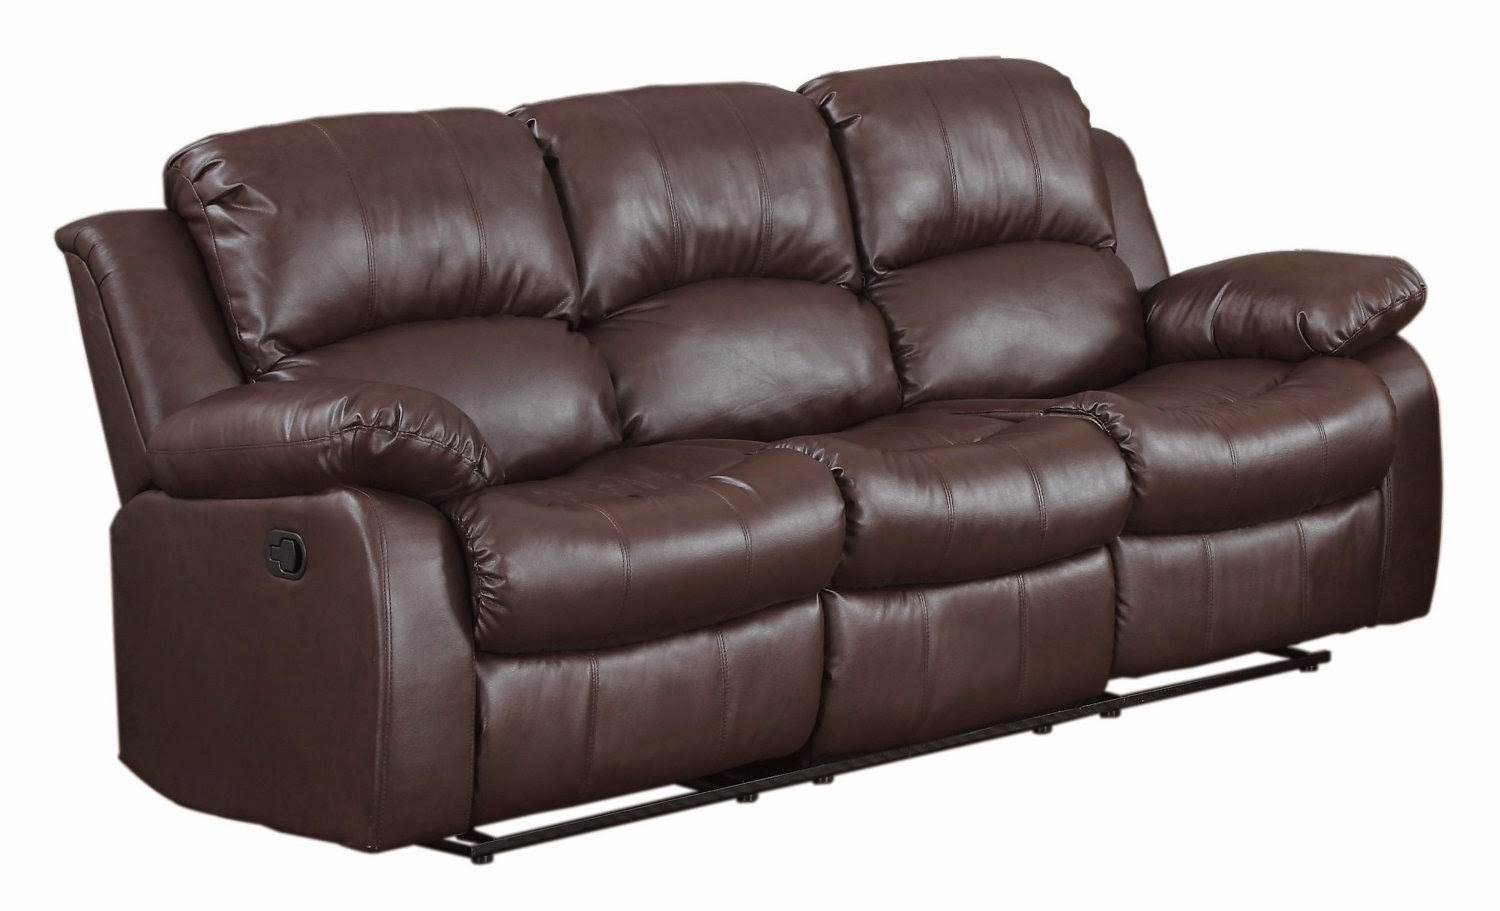 the best reclining sofas ratings reviews cheap faux leather recliner sofas. Black Bedroom Furniture Sets. Home Design Ideas